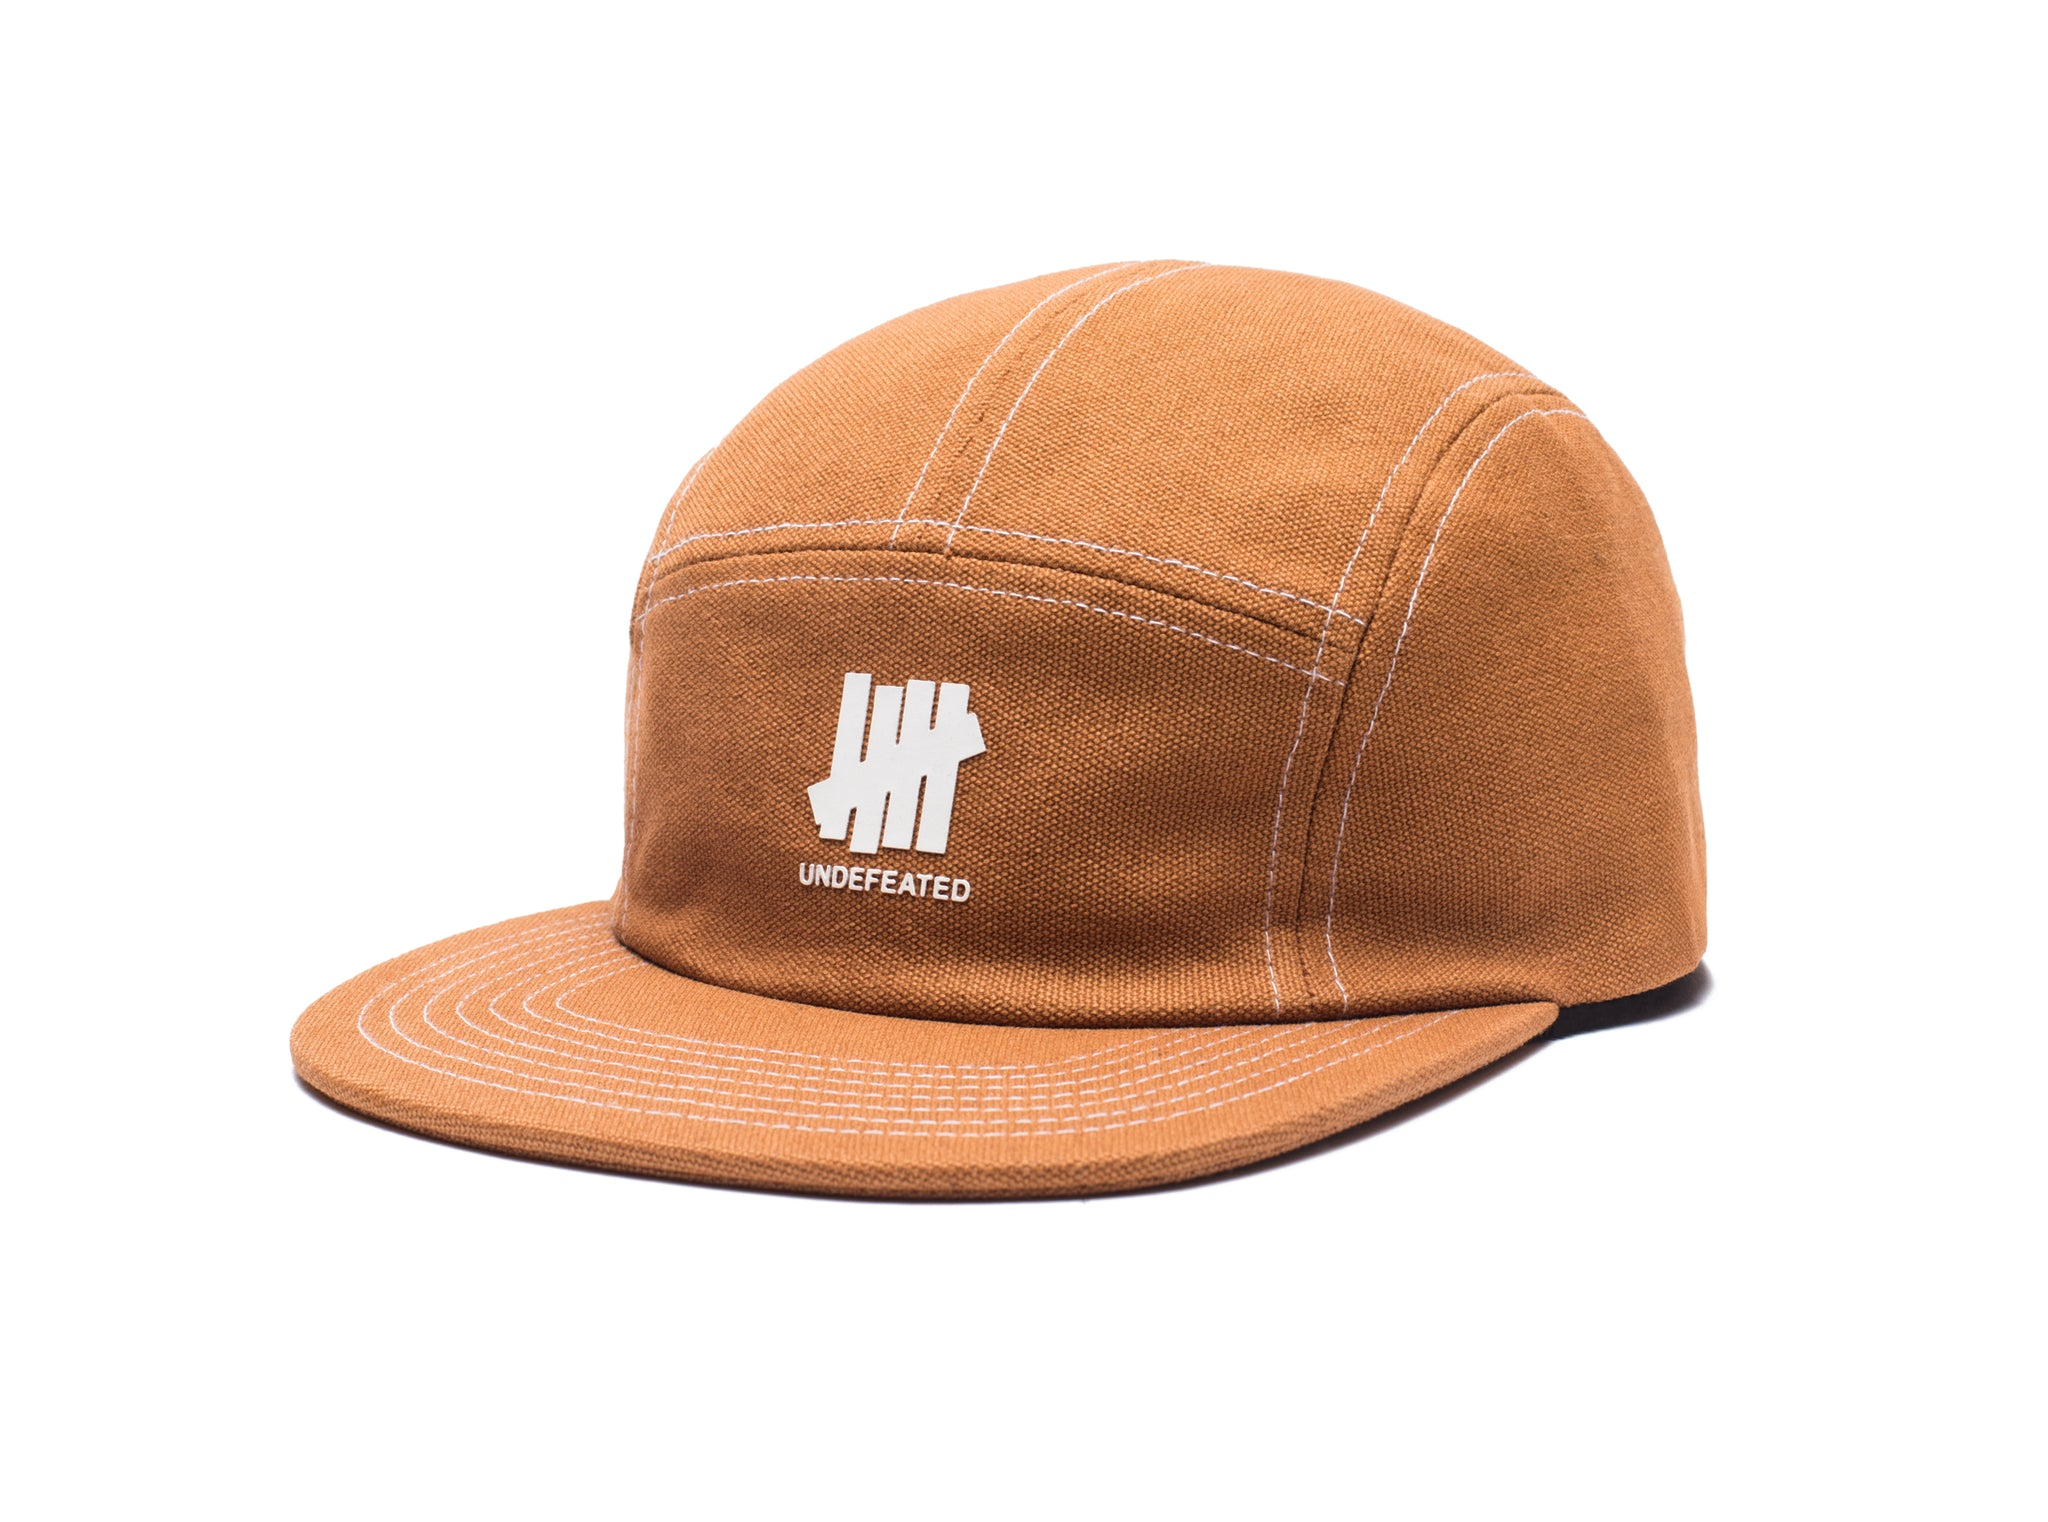 UNDEFEATED CANVAS CAMP HAT